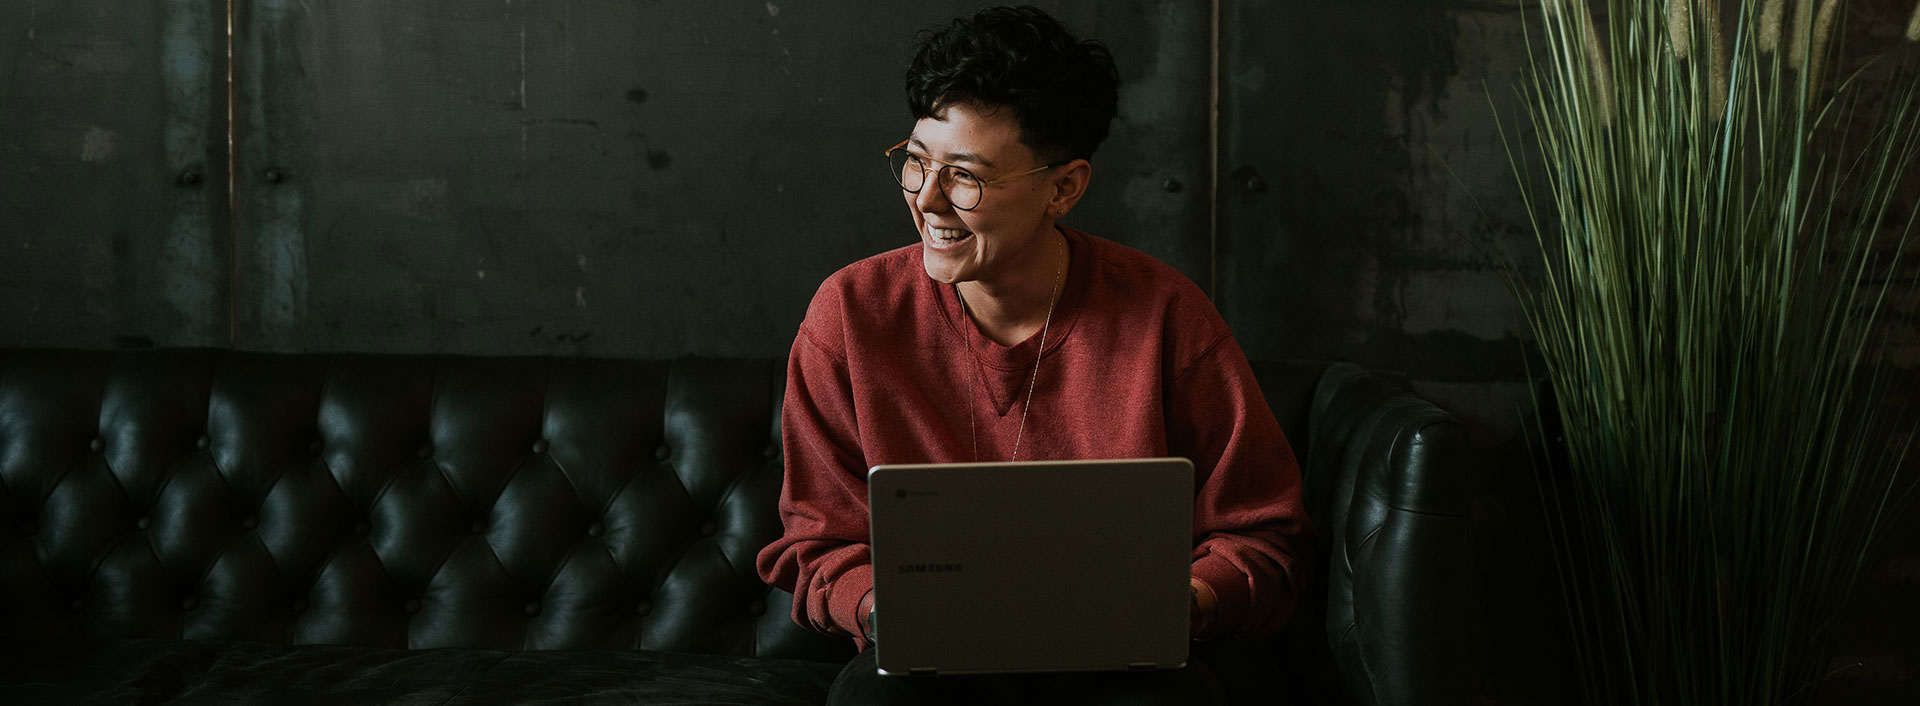 Photo of a worker laughing and working at a computer.